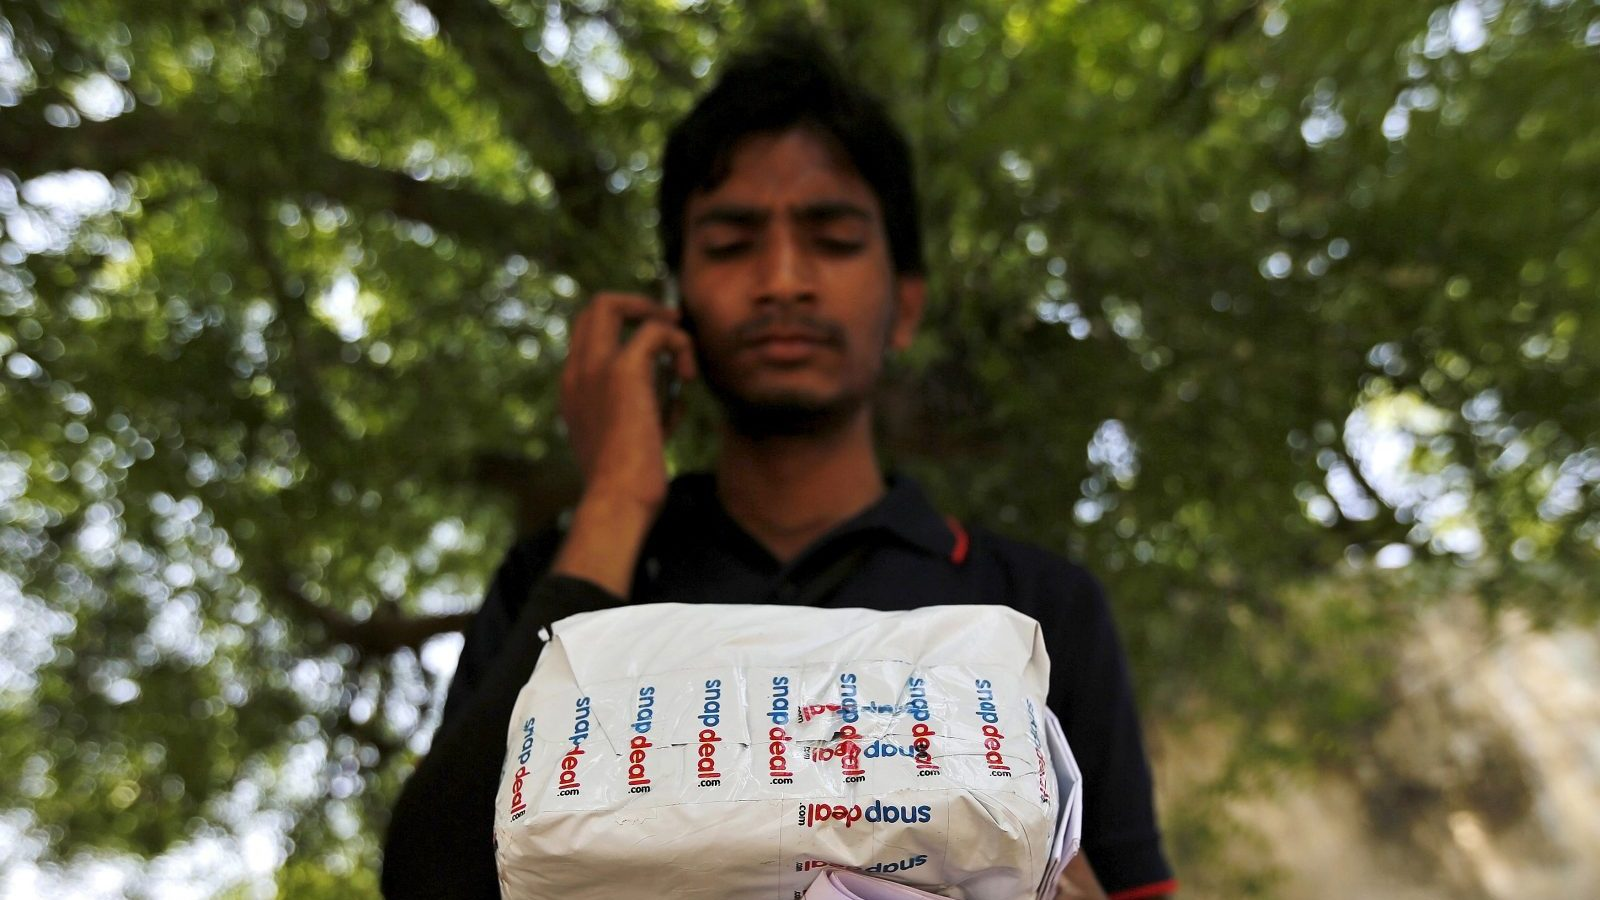 A worker of Indian e-commerce company Snapdeal.com makes a call to a customer before delivering a packet in Ahmedabad, India, April 17, 2015. After losing top engineering talent for years to America's tech heartland of Silicon Valley, India is luring them back as an e-commerce boom sparks a thriving start-up culture, unprecedented pay, and perks including free healthcare for in-laws. Picture taken April 17, 2015. To match INDIA-ECOMMERCE/WORKERS. REUTERS/Amit Dave  - GF10000082310